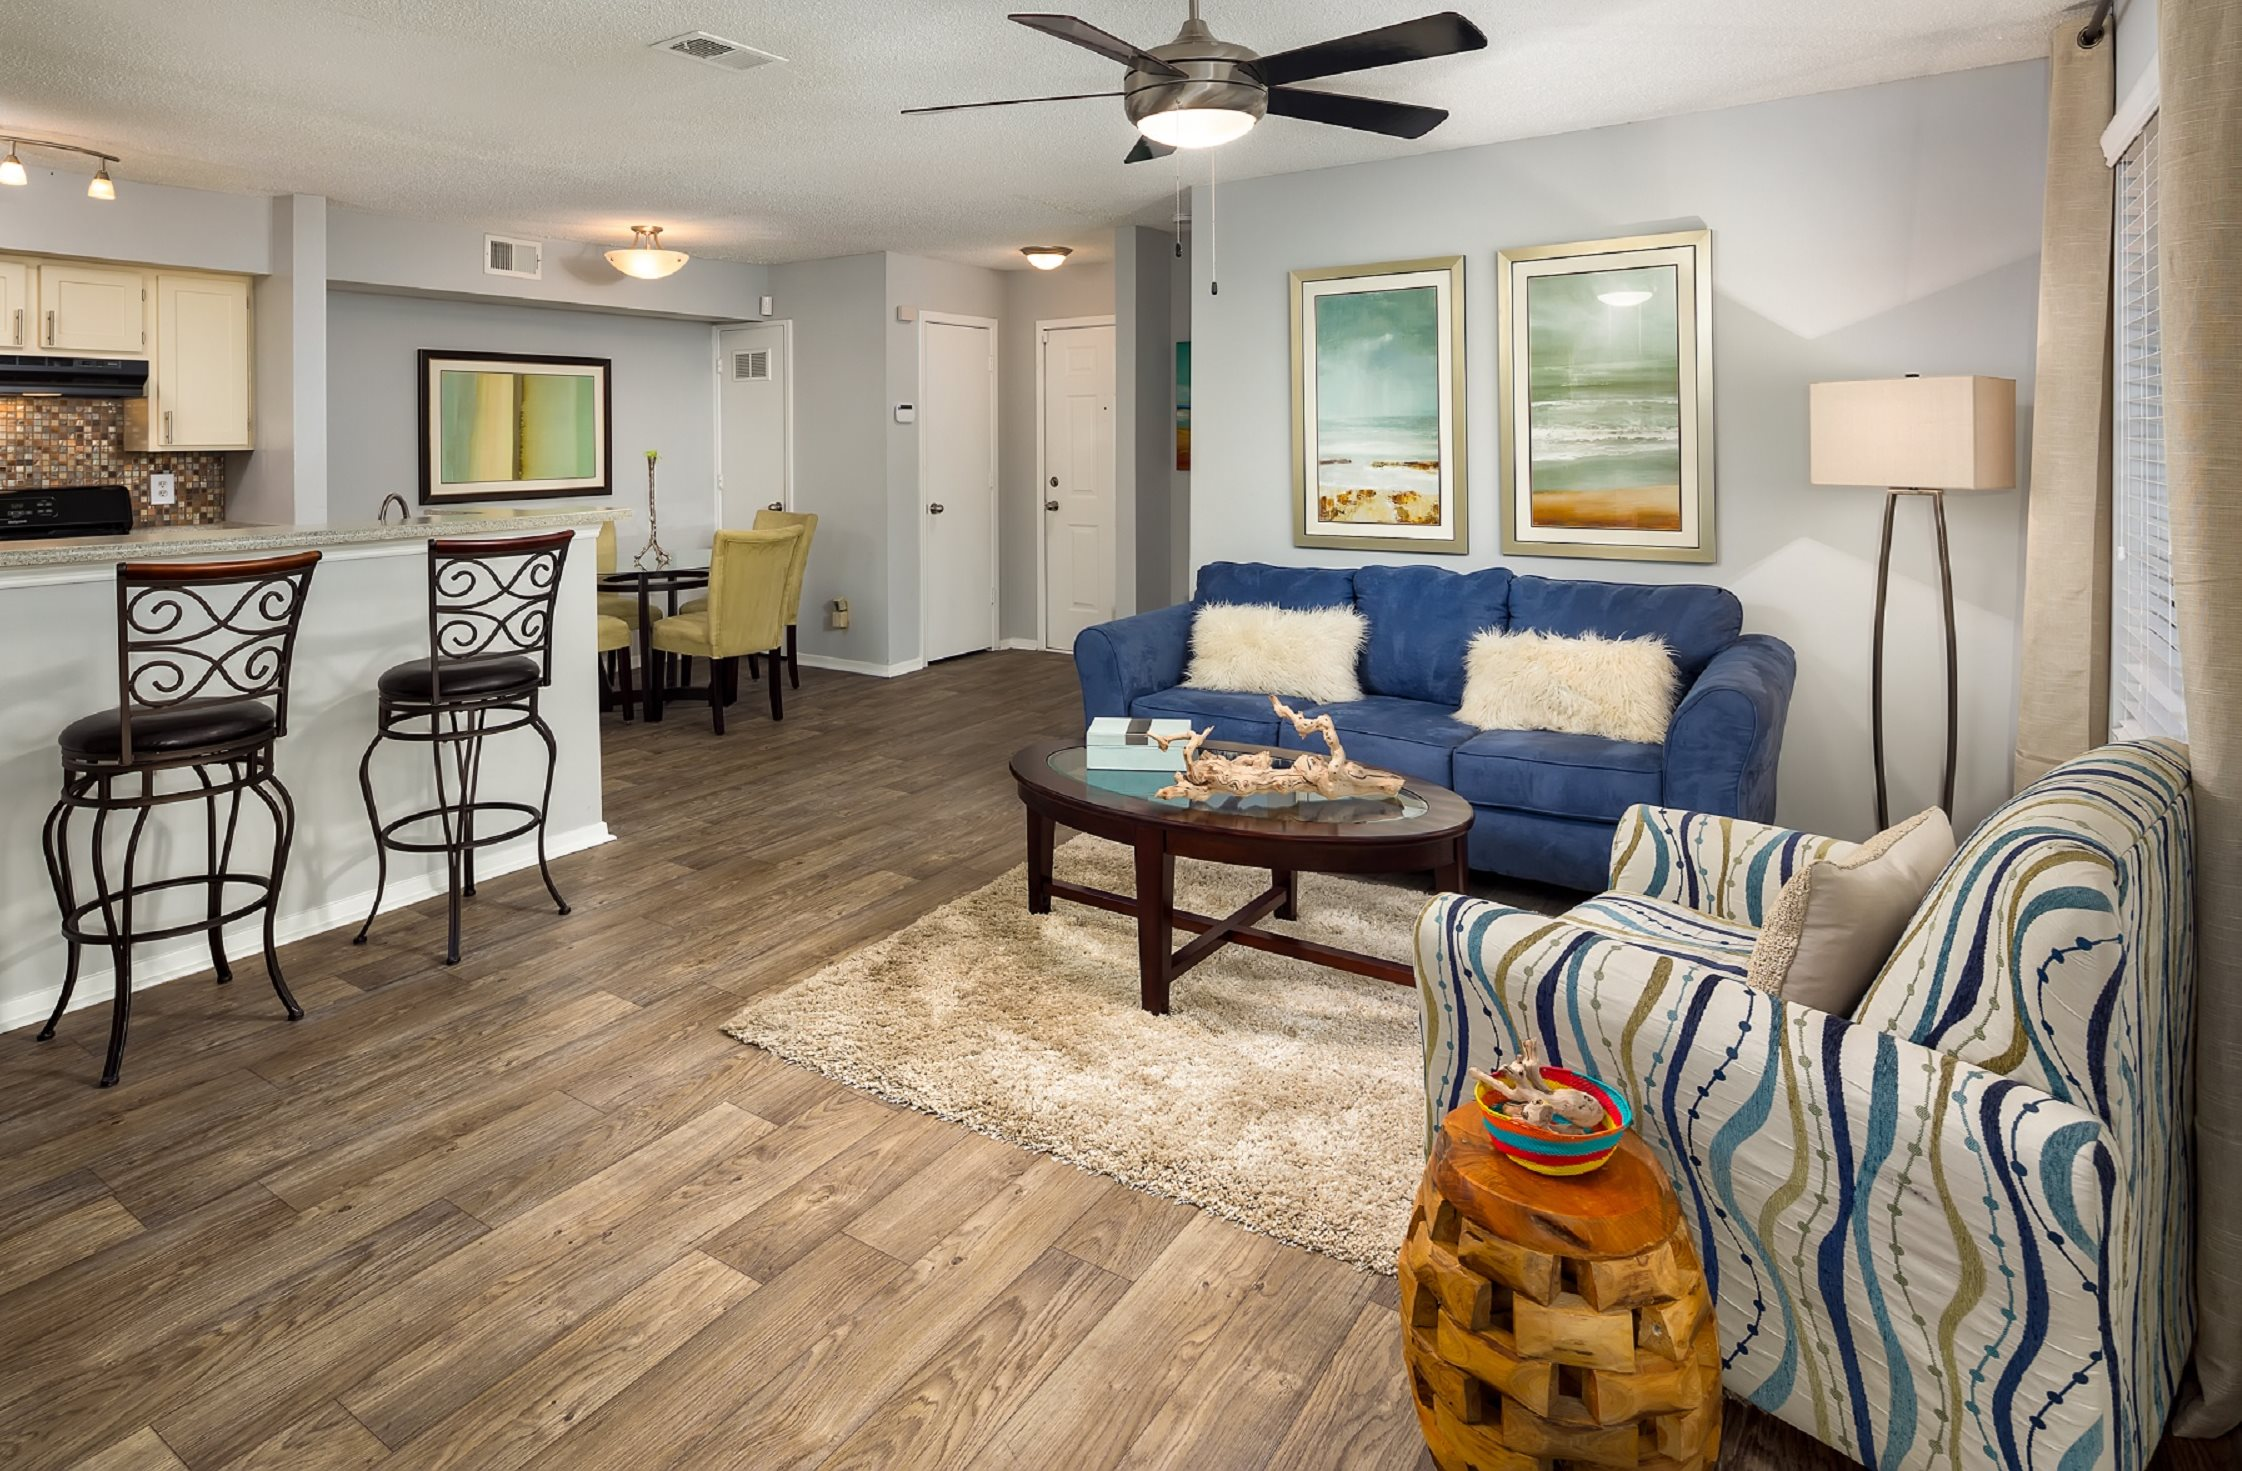 The Fields Waterford Point | Apartments in Lithia Springs, GA